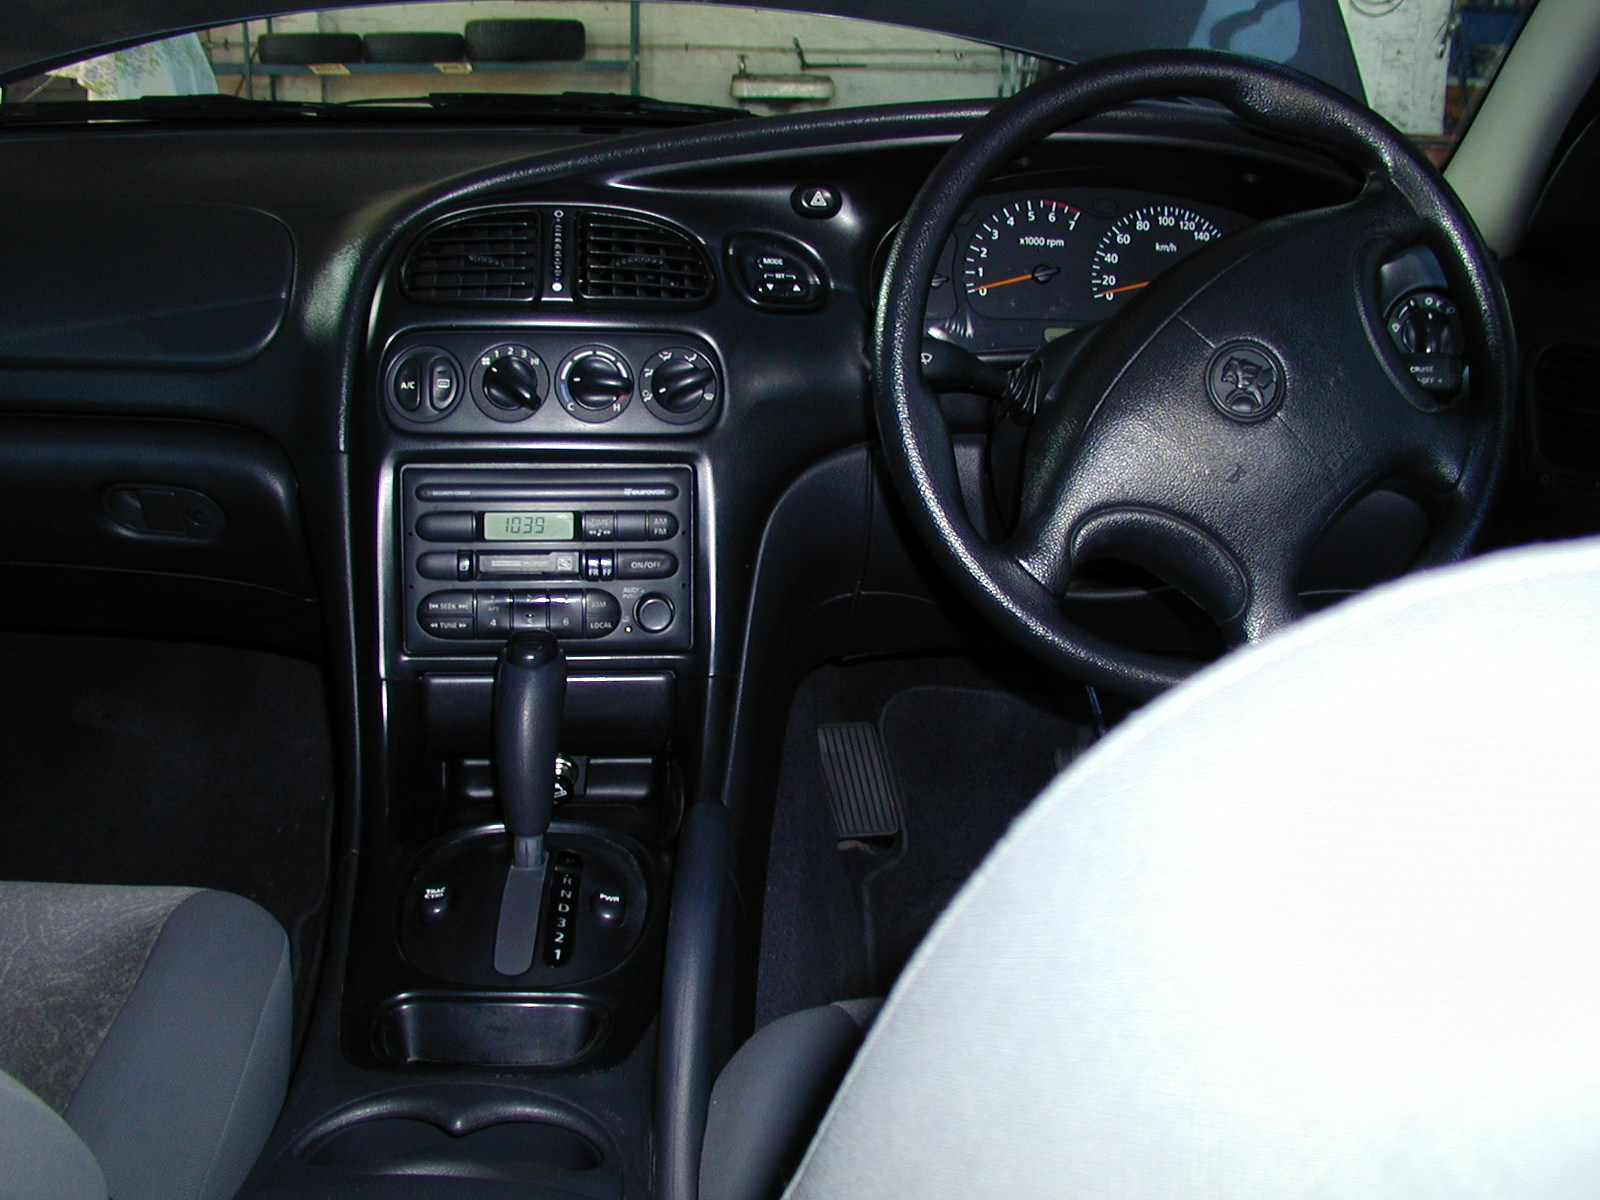 holden commodore (vt) 2007 models #8